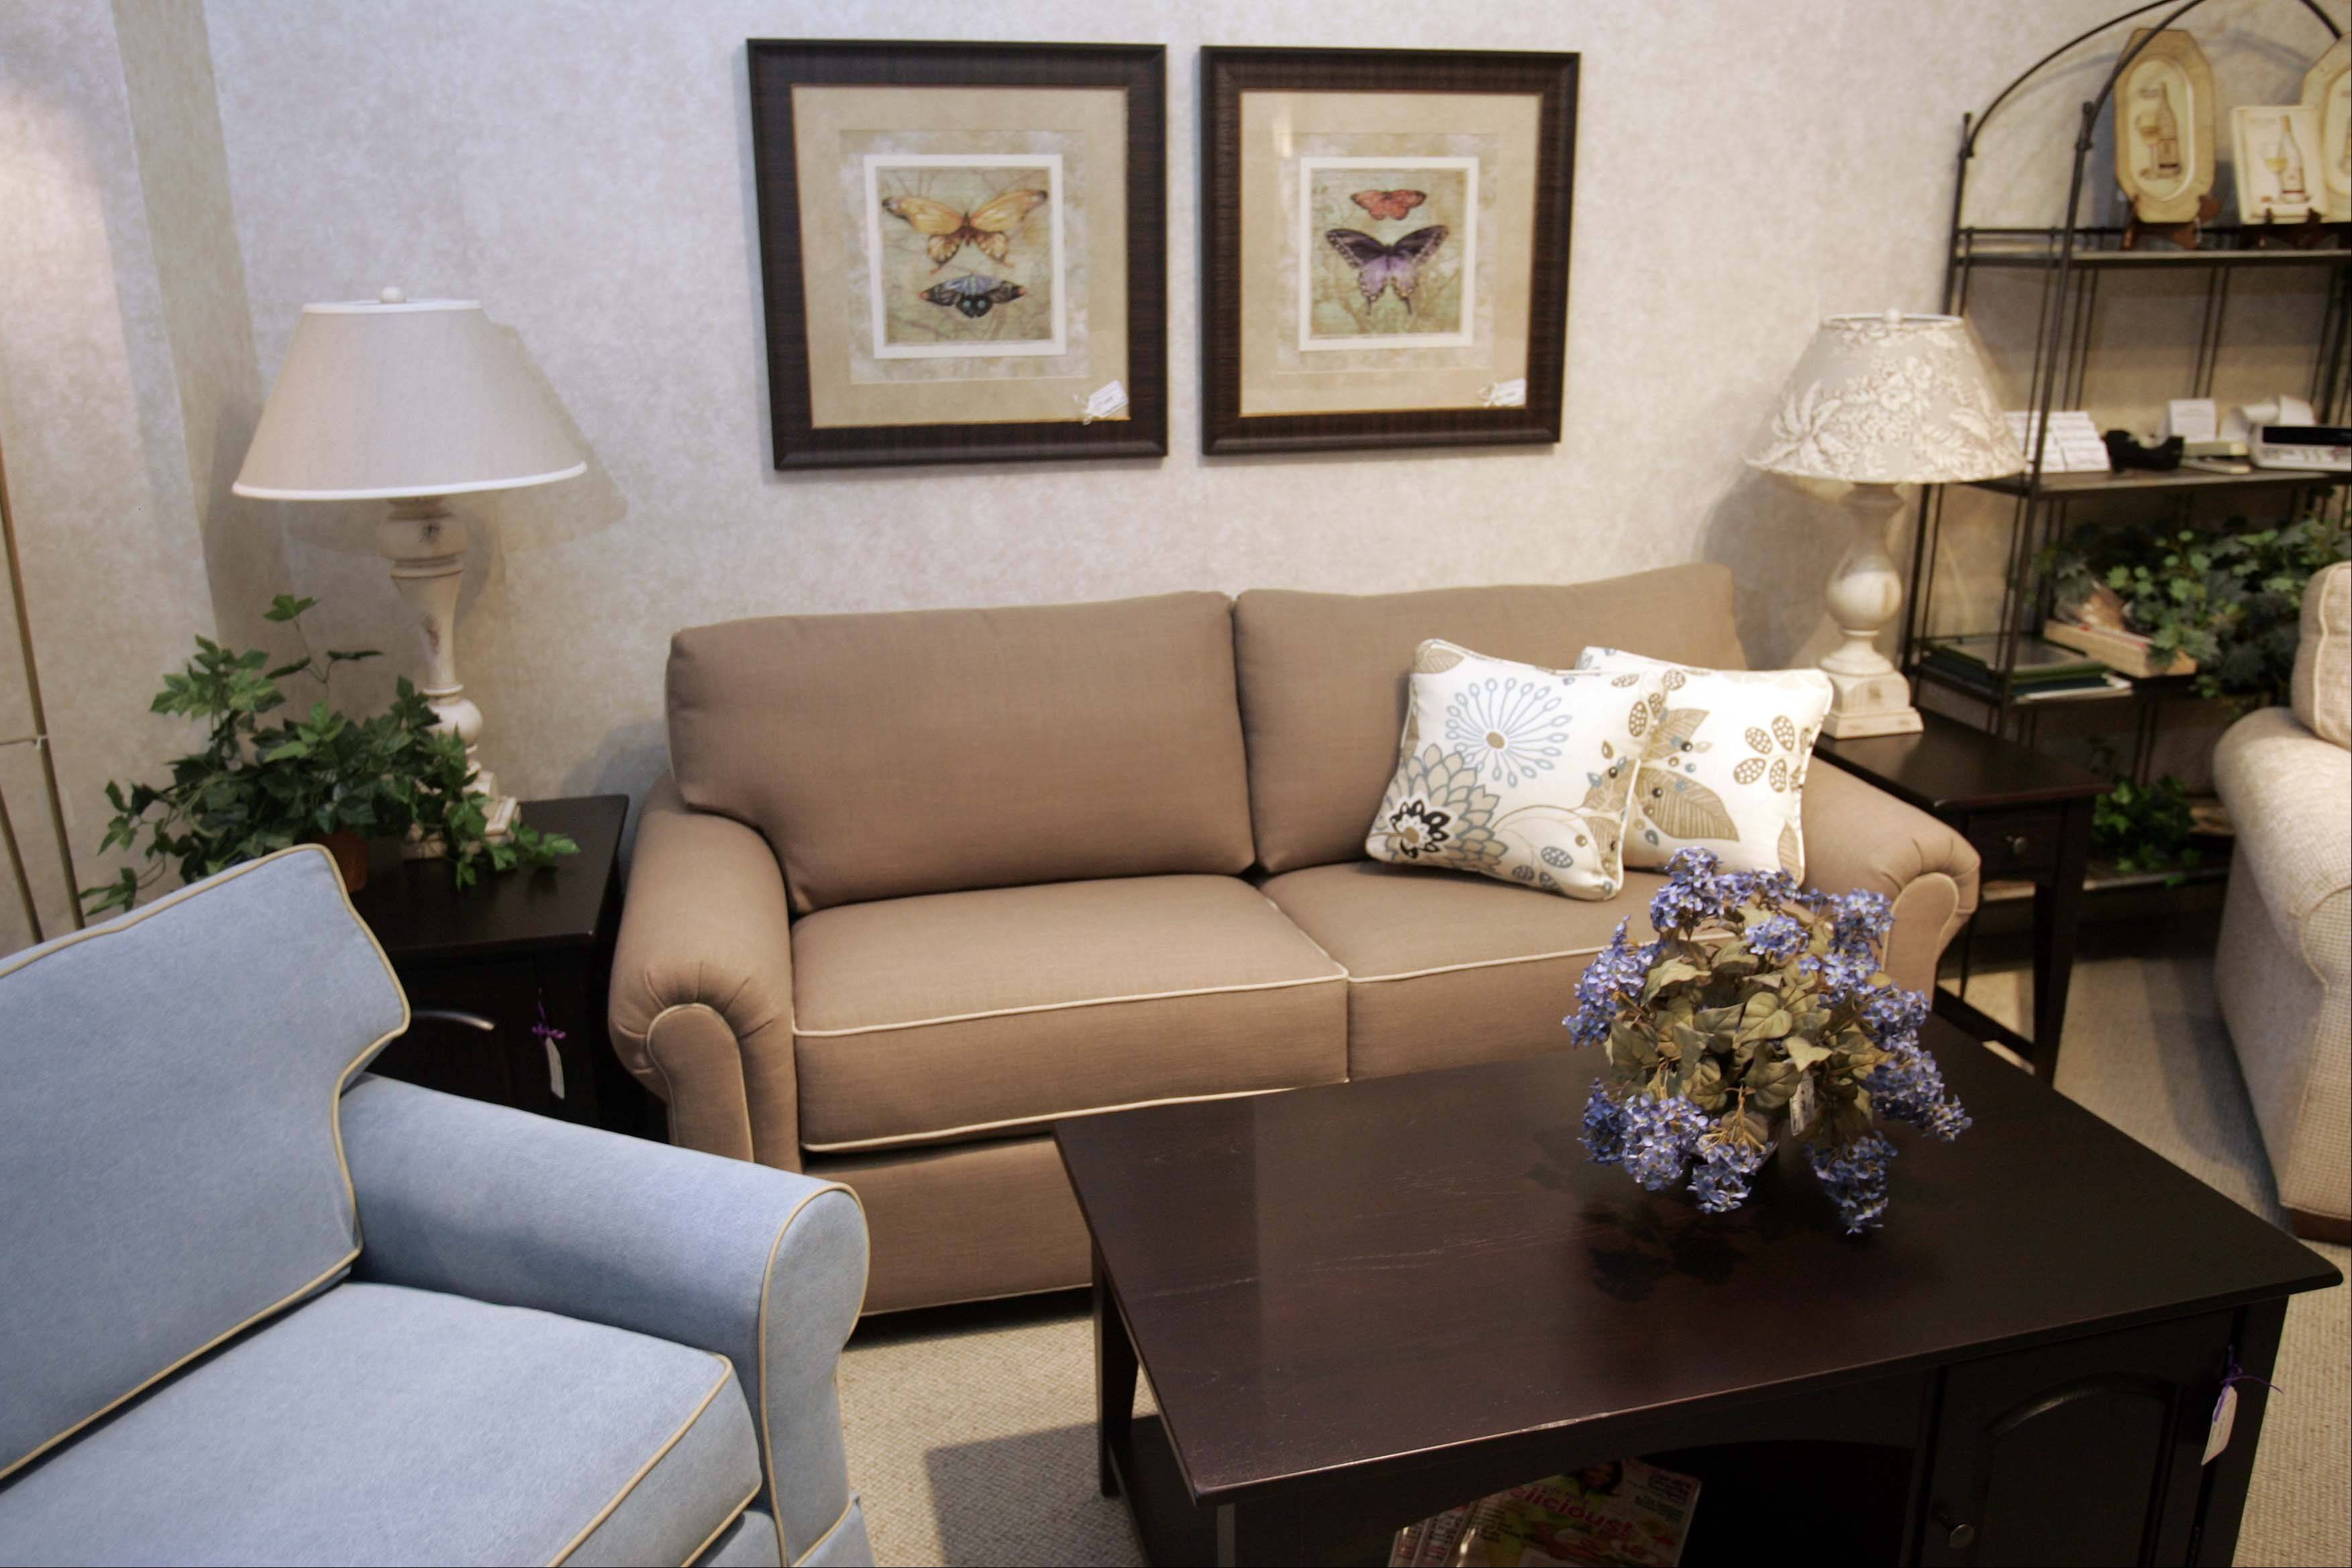 Dow Furniture in North Aurora offers some compact furniture for older customers downsizing into condos or smaller homes.